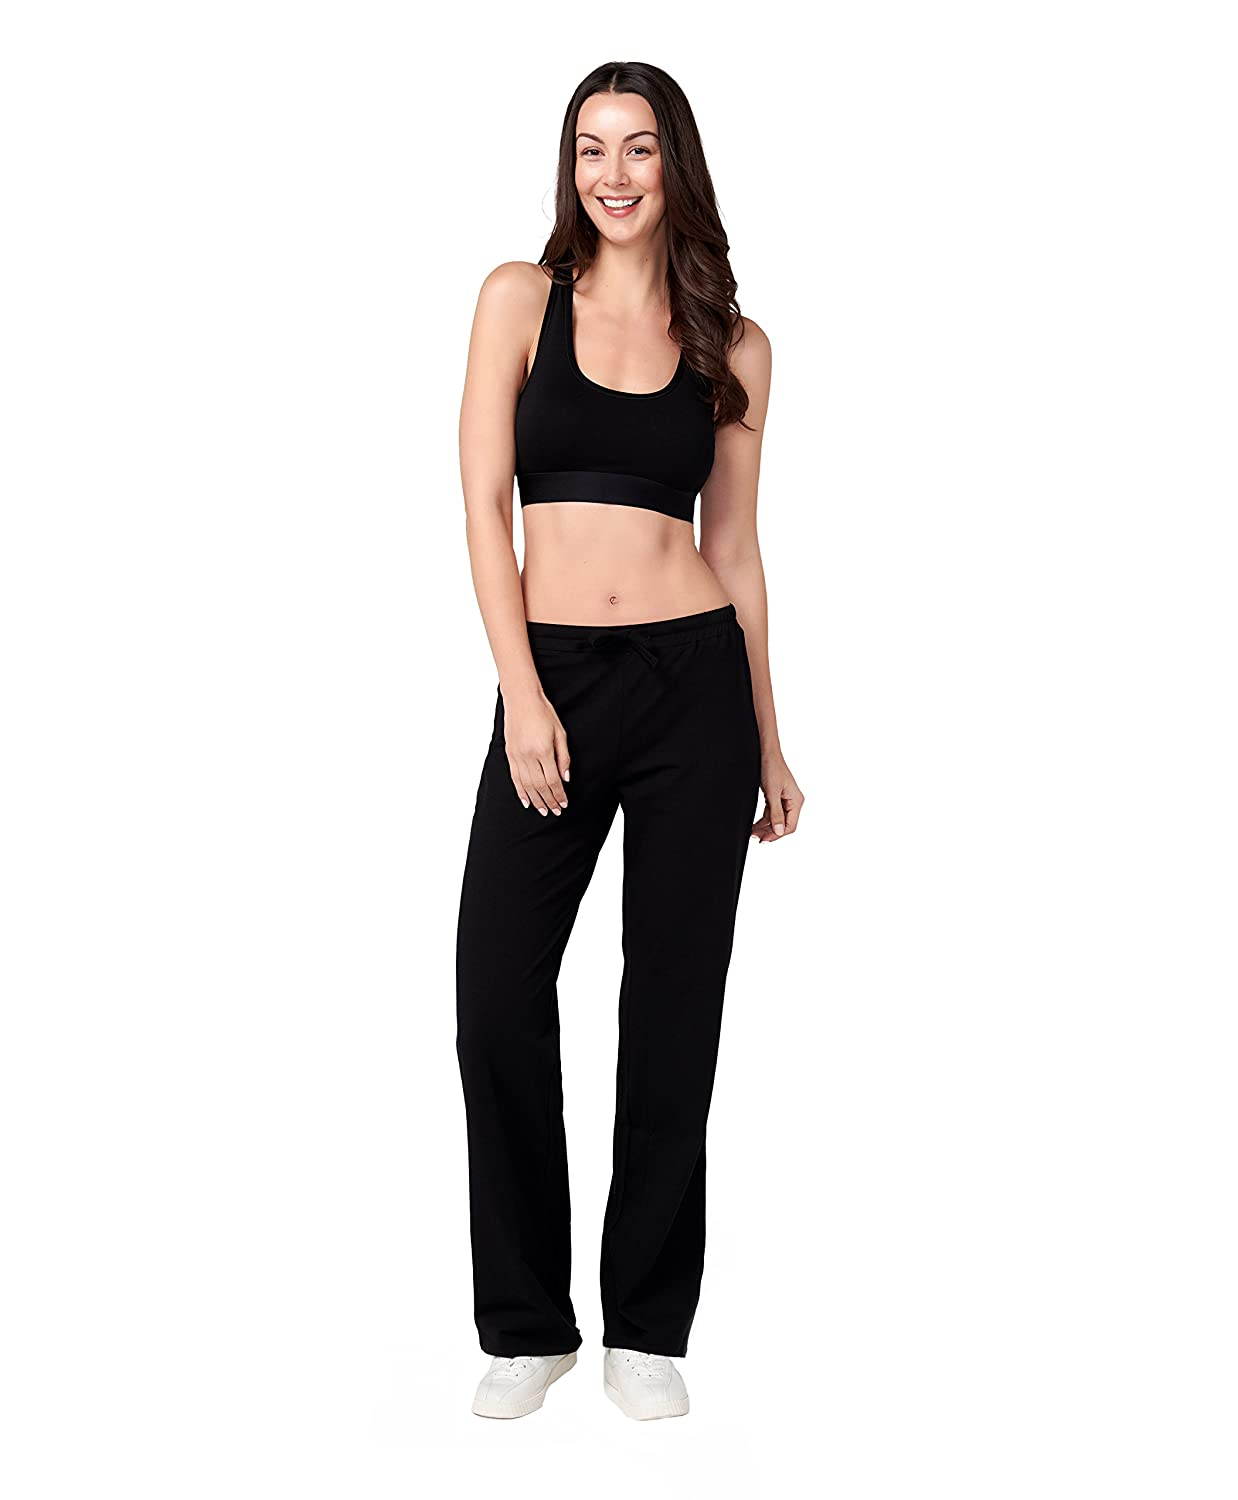 35b30df01b898 Amazon.com: Pact Women's Drawstring Sweatpants with Pockets | Made with Organic  Cotton: Industrial & Scientific